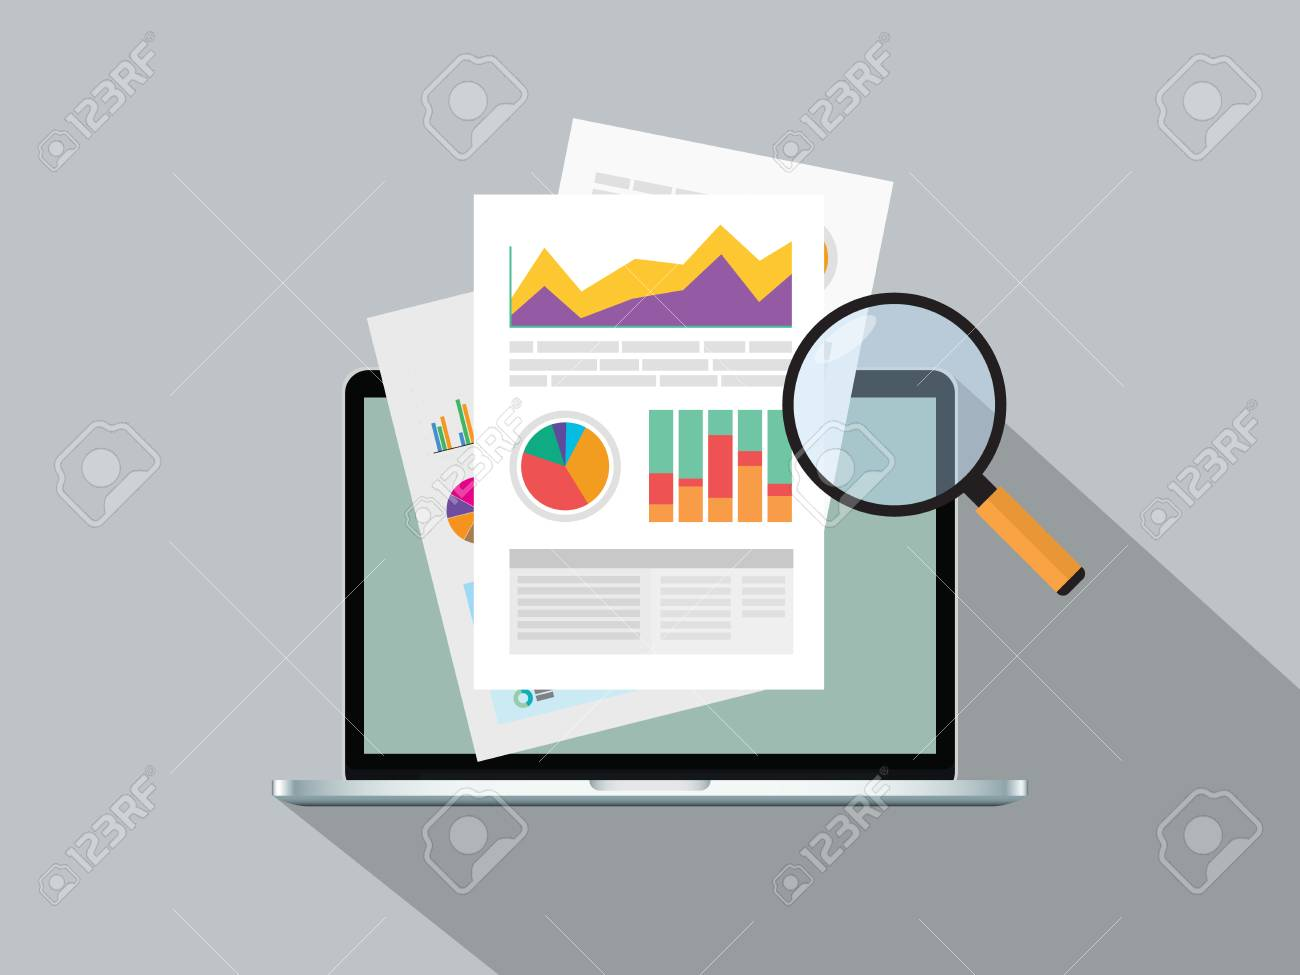 business report paper with graph online on top of notebook vector graphic illustration - 114992964